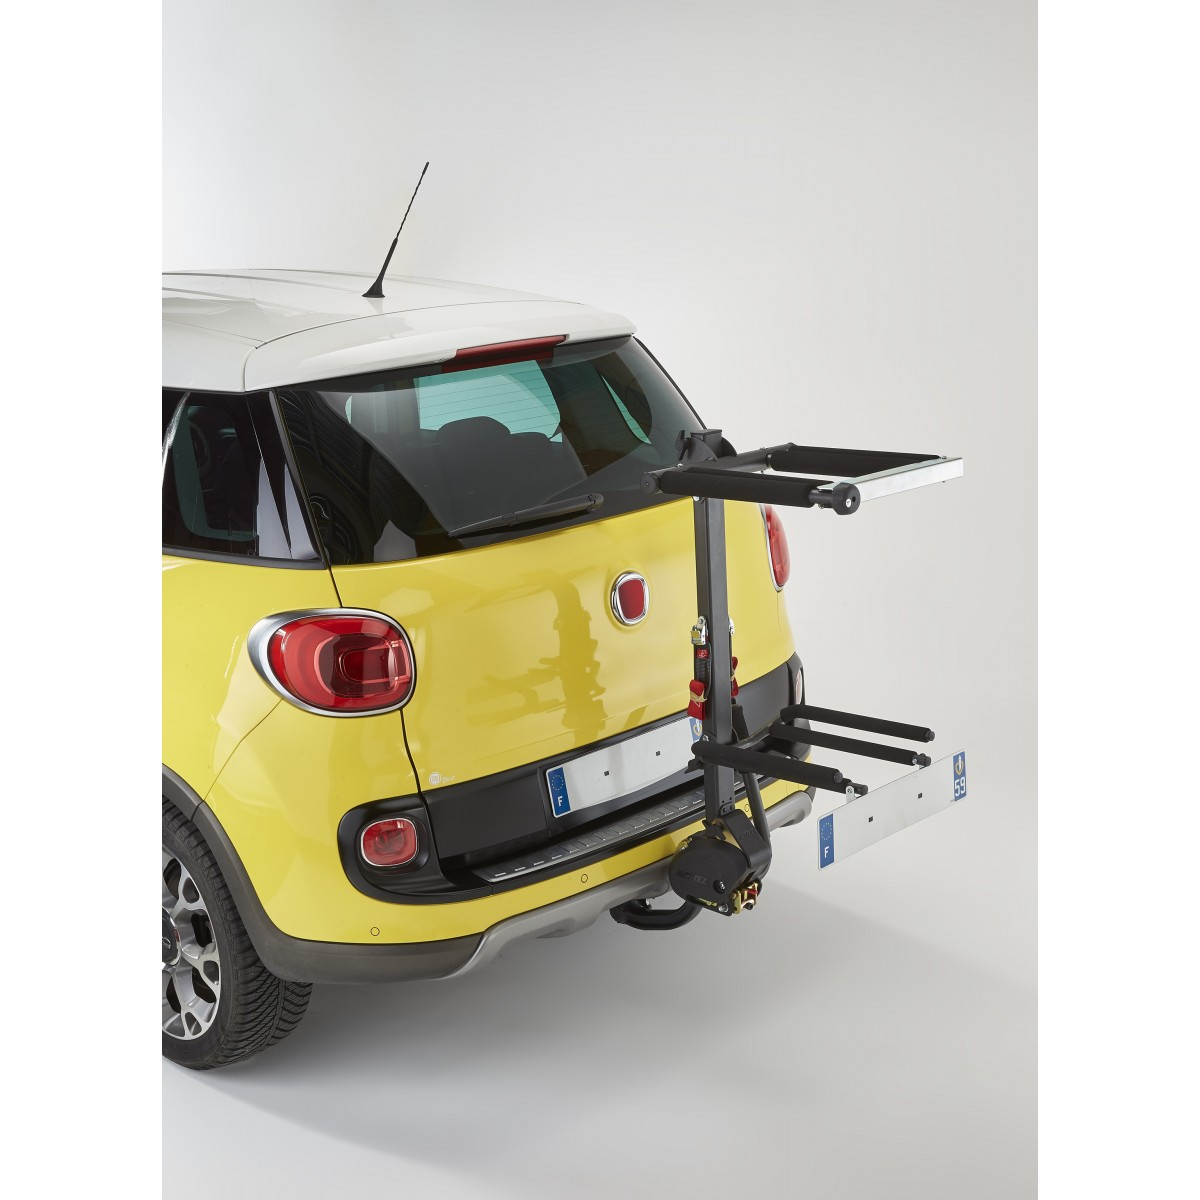 Ski / Snowboard carrier on towball